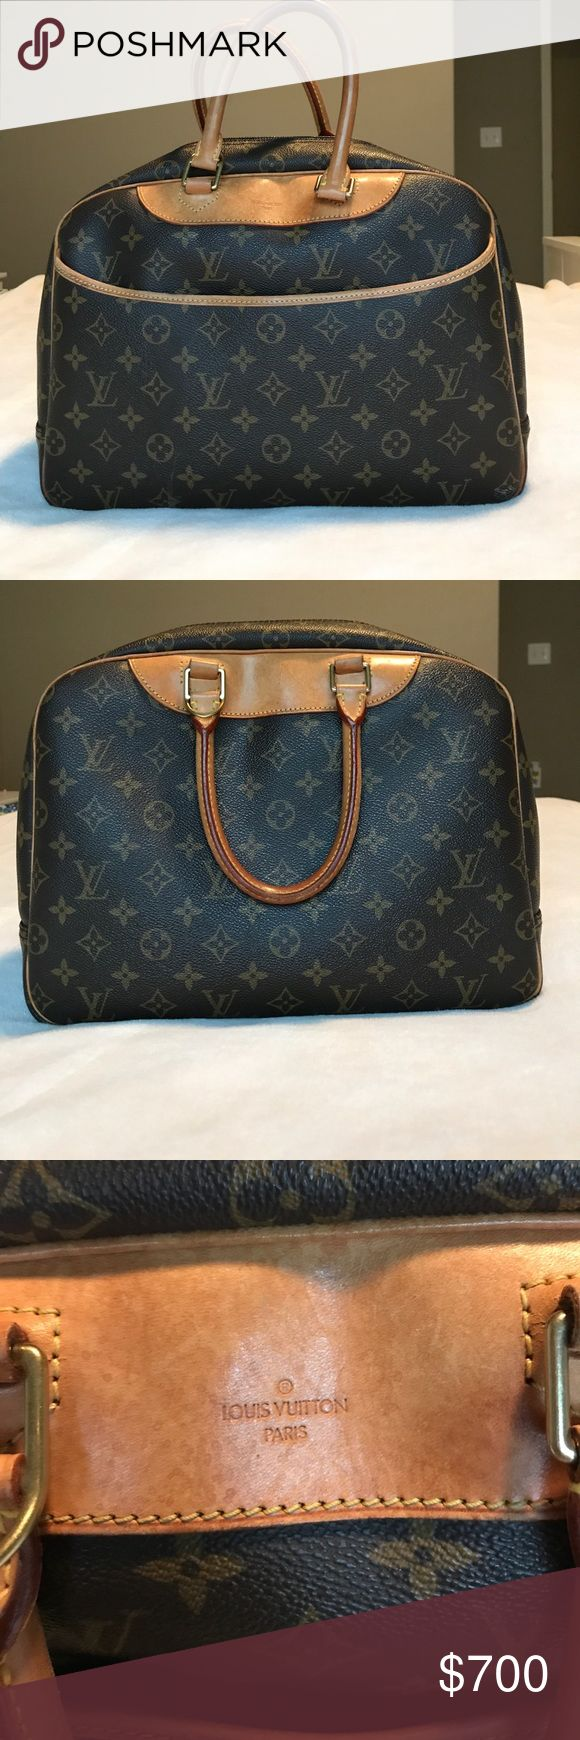 Authentic Louis Vuitton purse Authentic Louis Vuitton cross body/hand bag. Bag very well taken care of. Missing the straps to use as a cross body bag. The only smudge/scratch marks are in the photos. The zipper is a little warn down. I think it is a little too heavy for me. Looking to trade for authentic MK purse or watch. I'll also take for the price given or offered. Louis Vuitton Bags